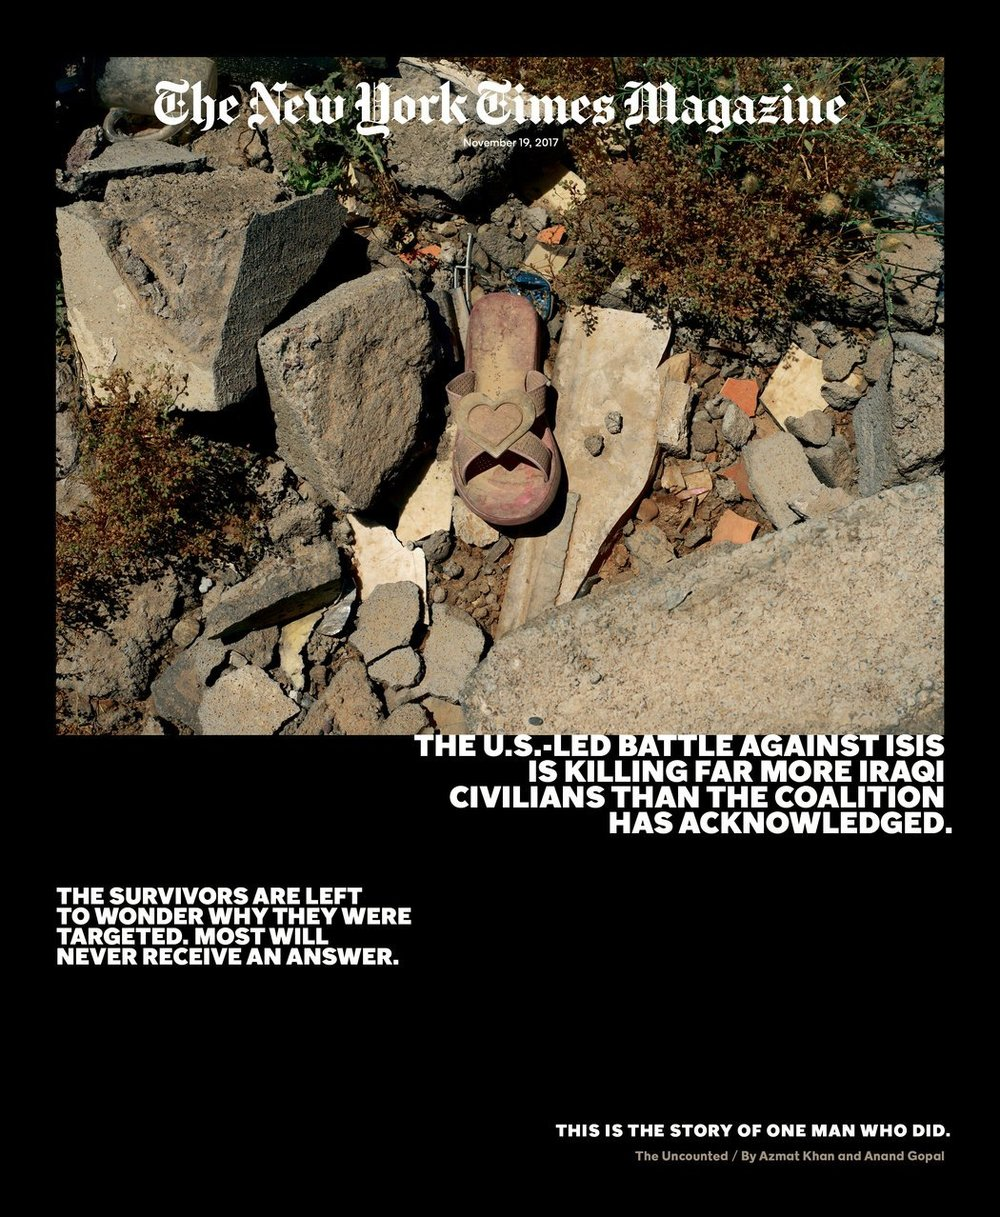 The Uncounted NYT Magazine Cover